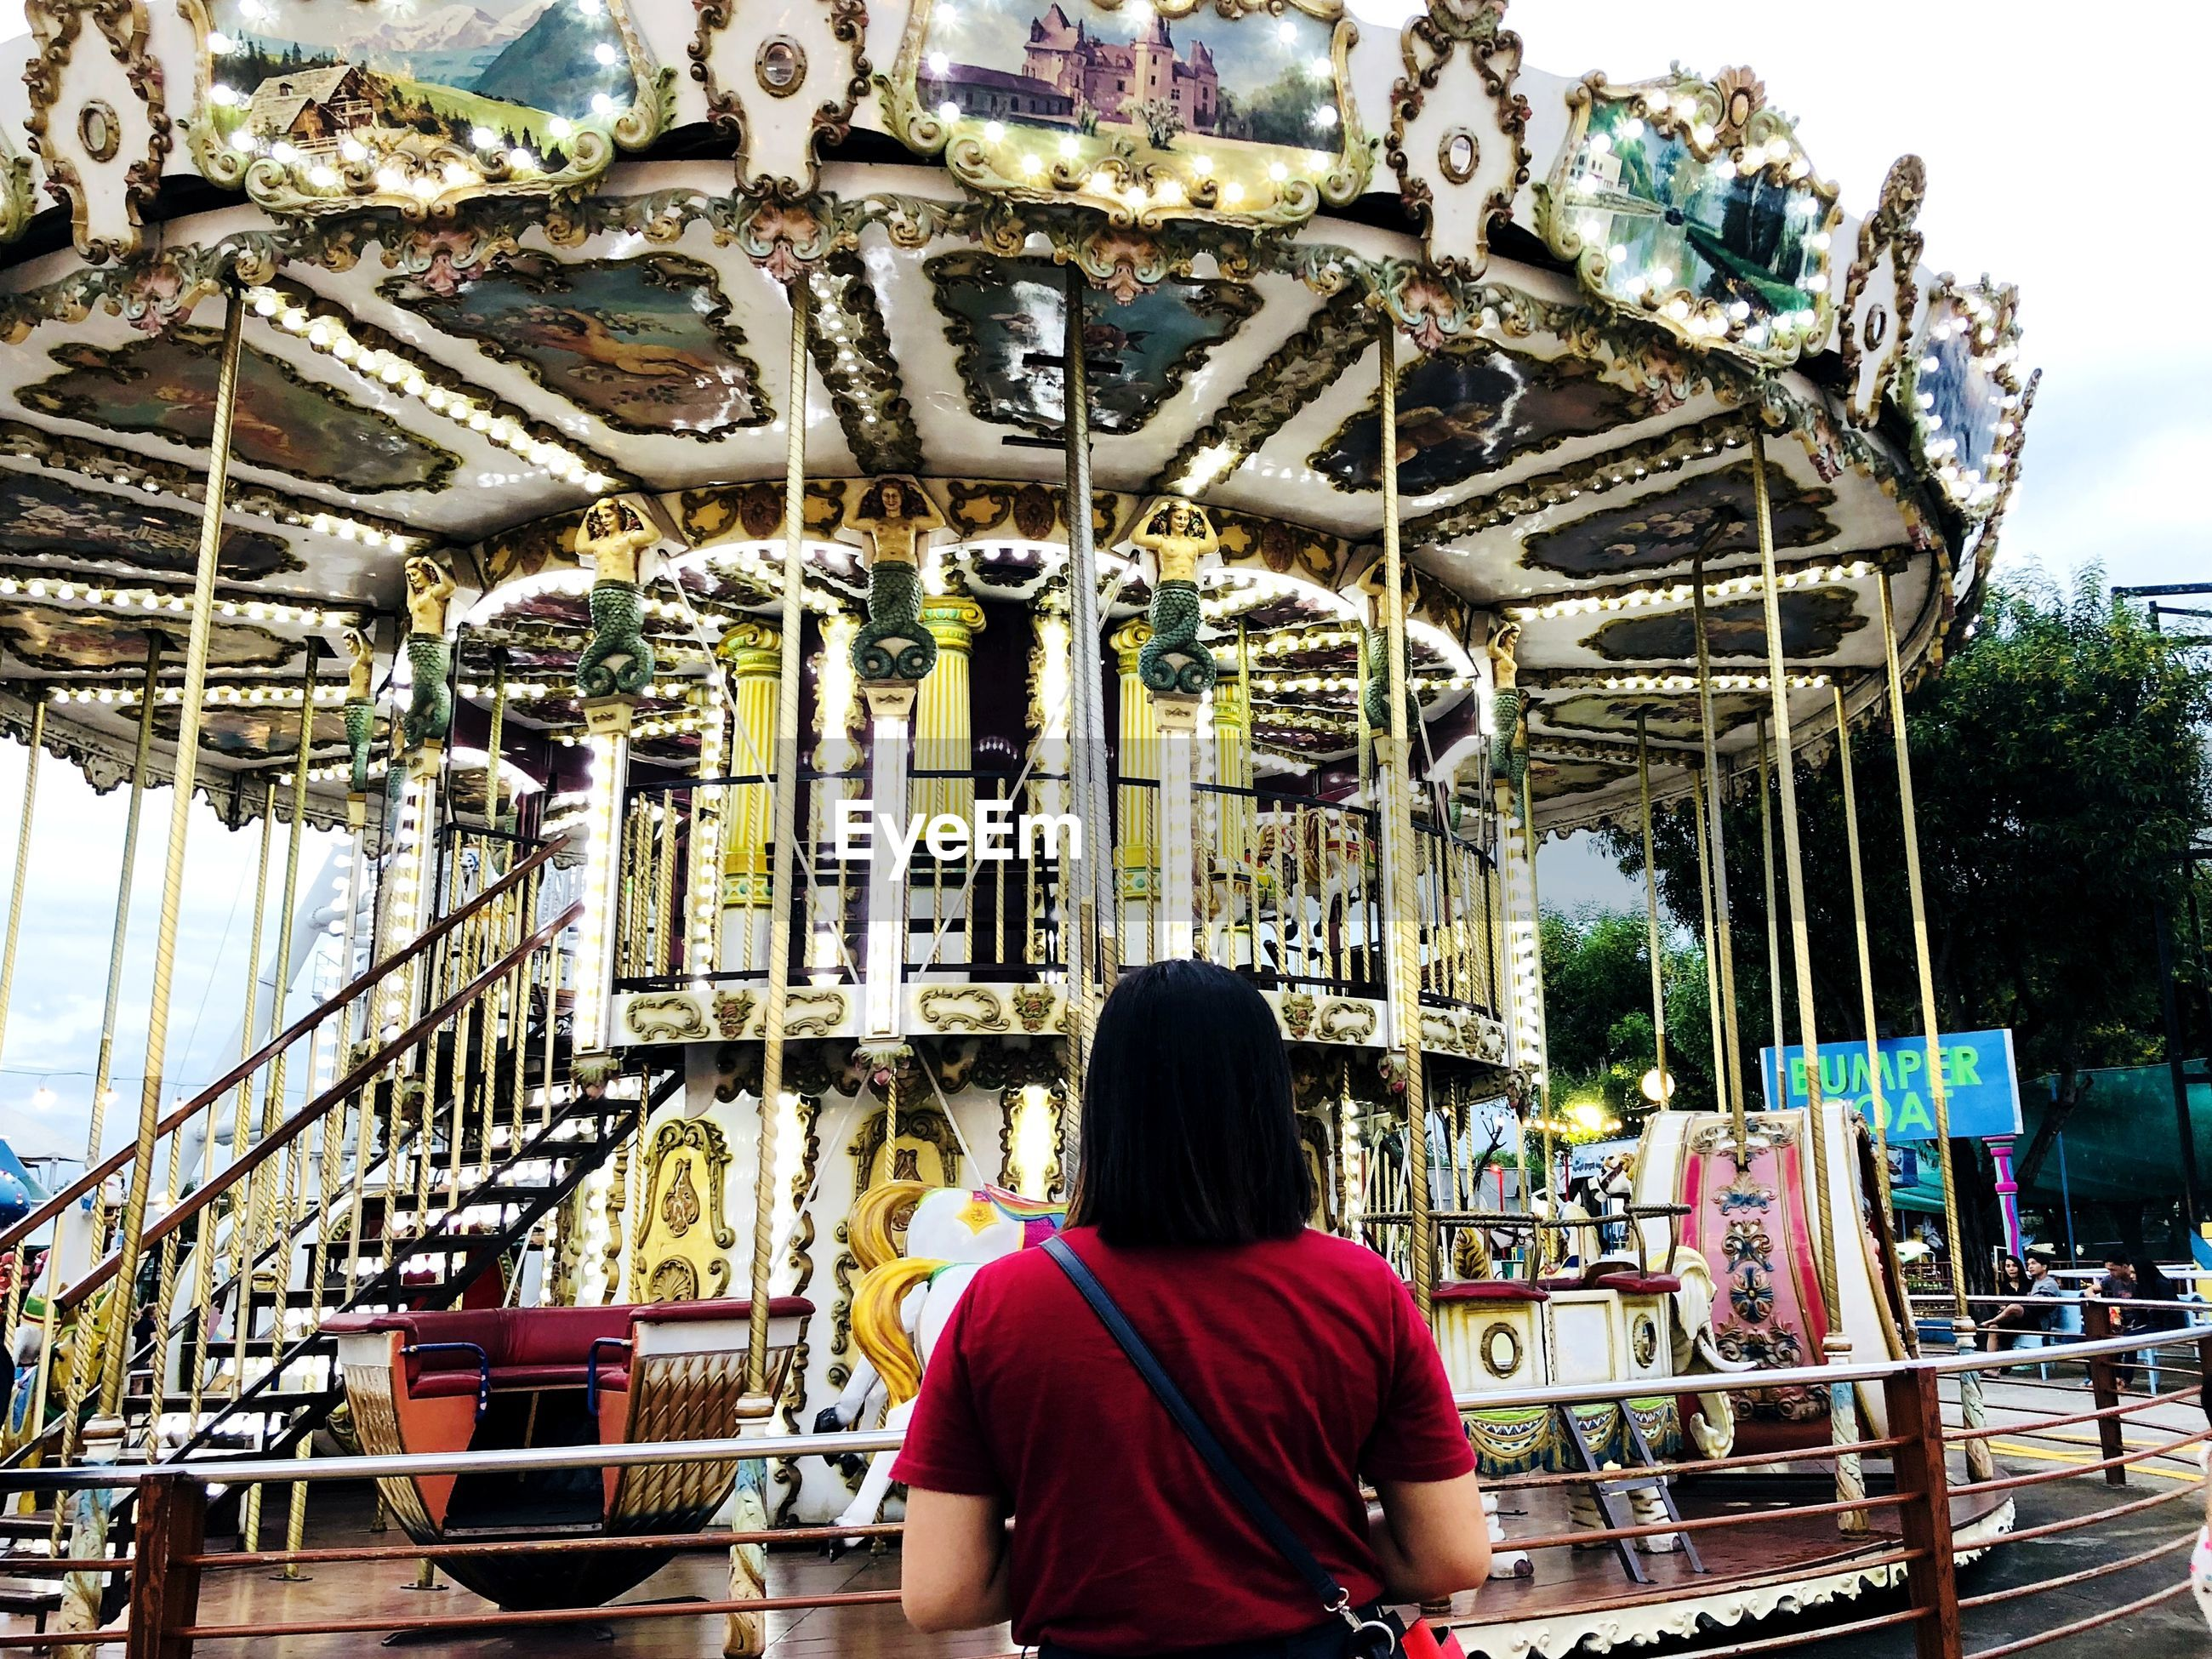 REAR VIEW OF WOMAN SITTING ON AMUSEMENT PARK RIDE